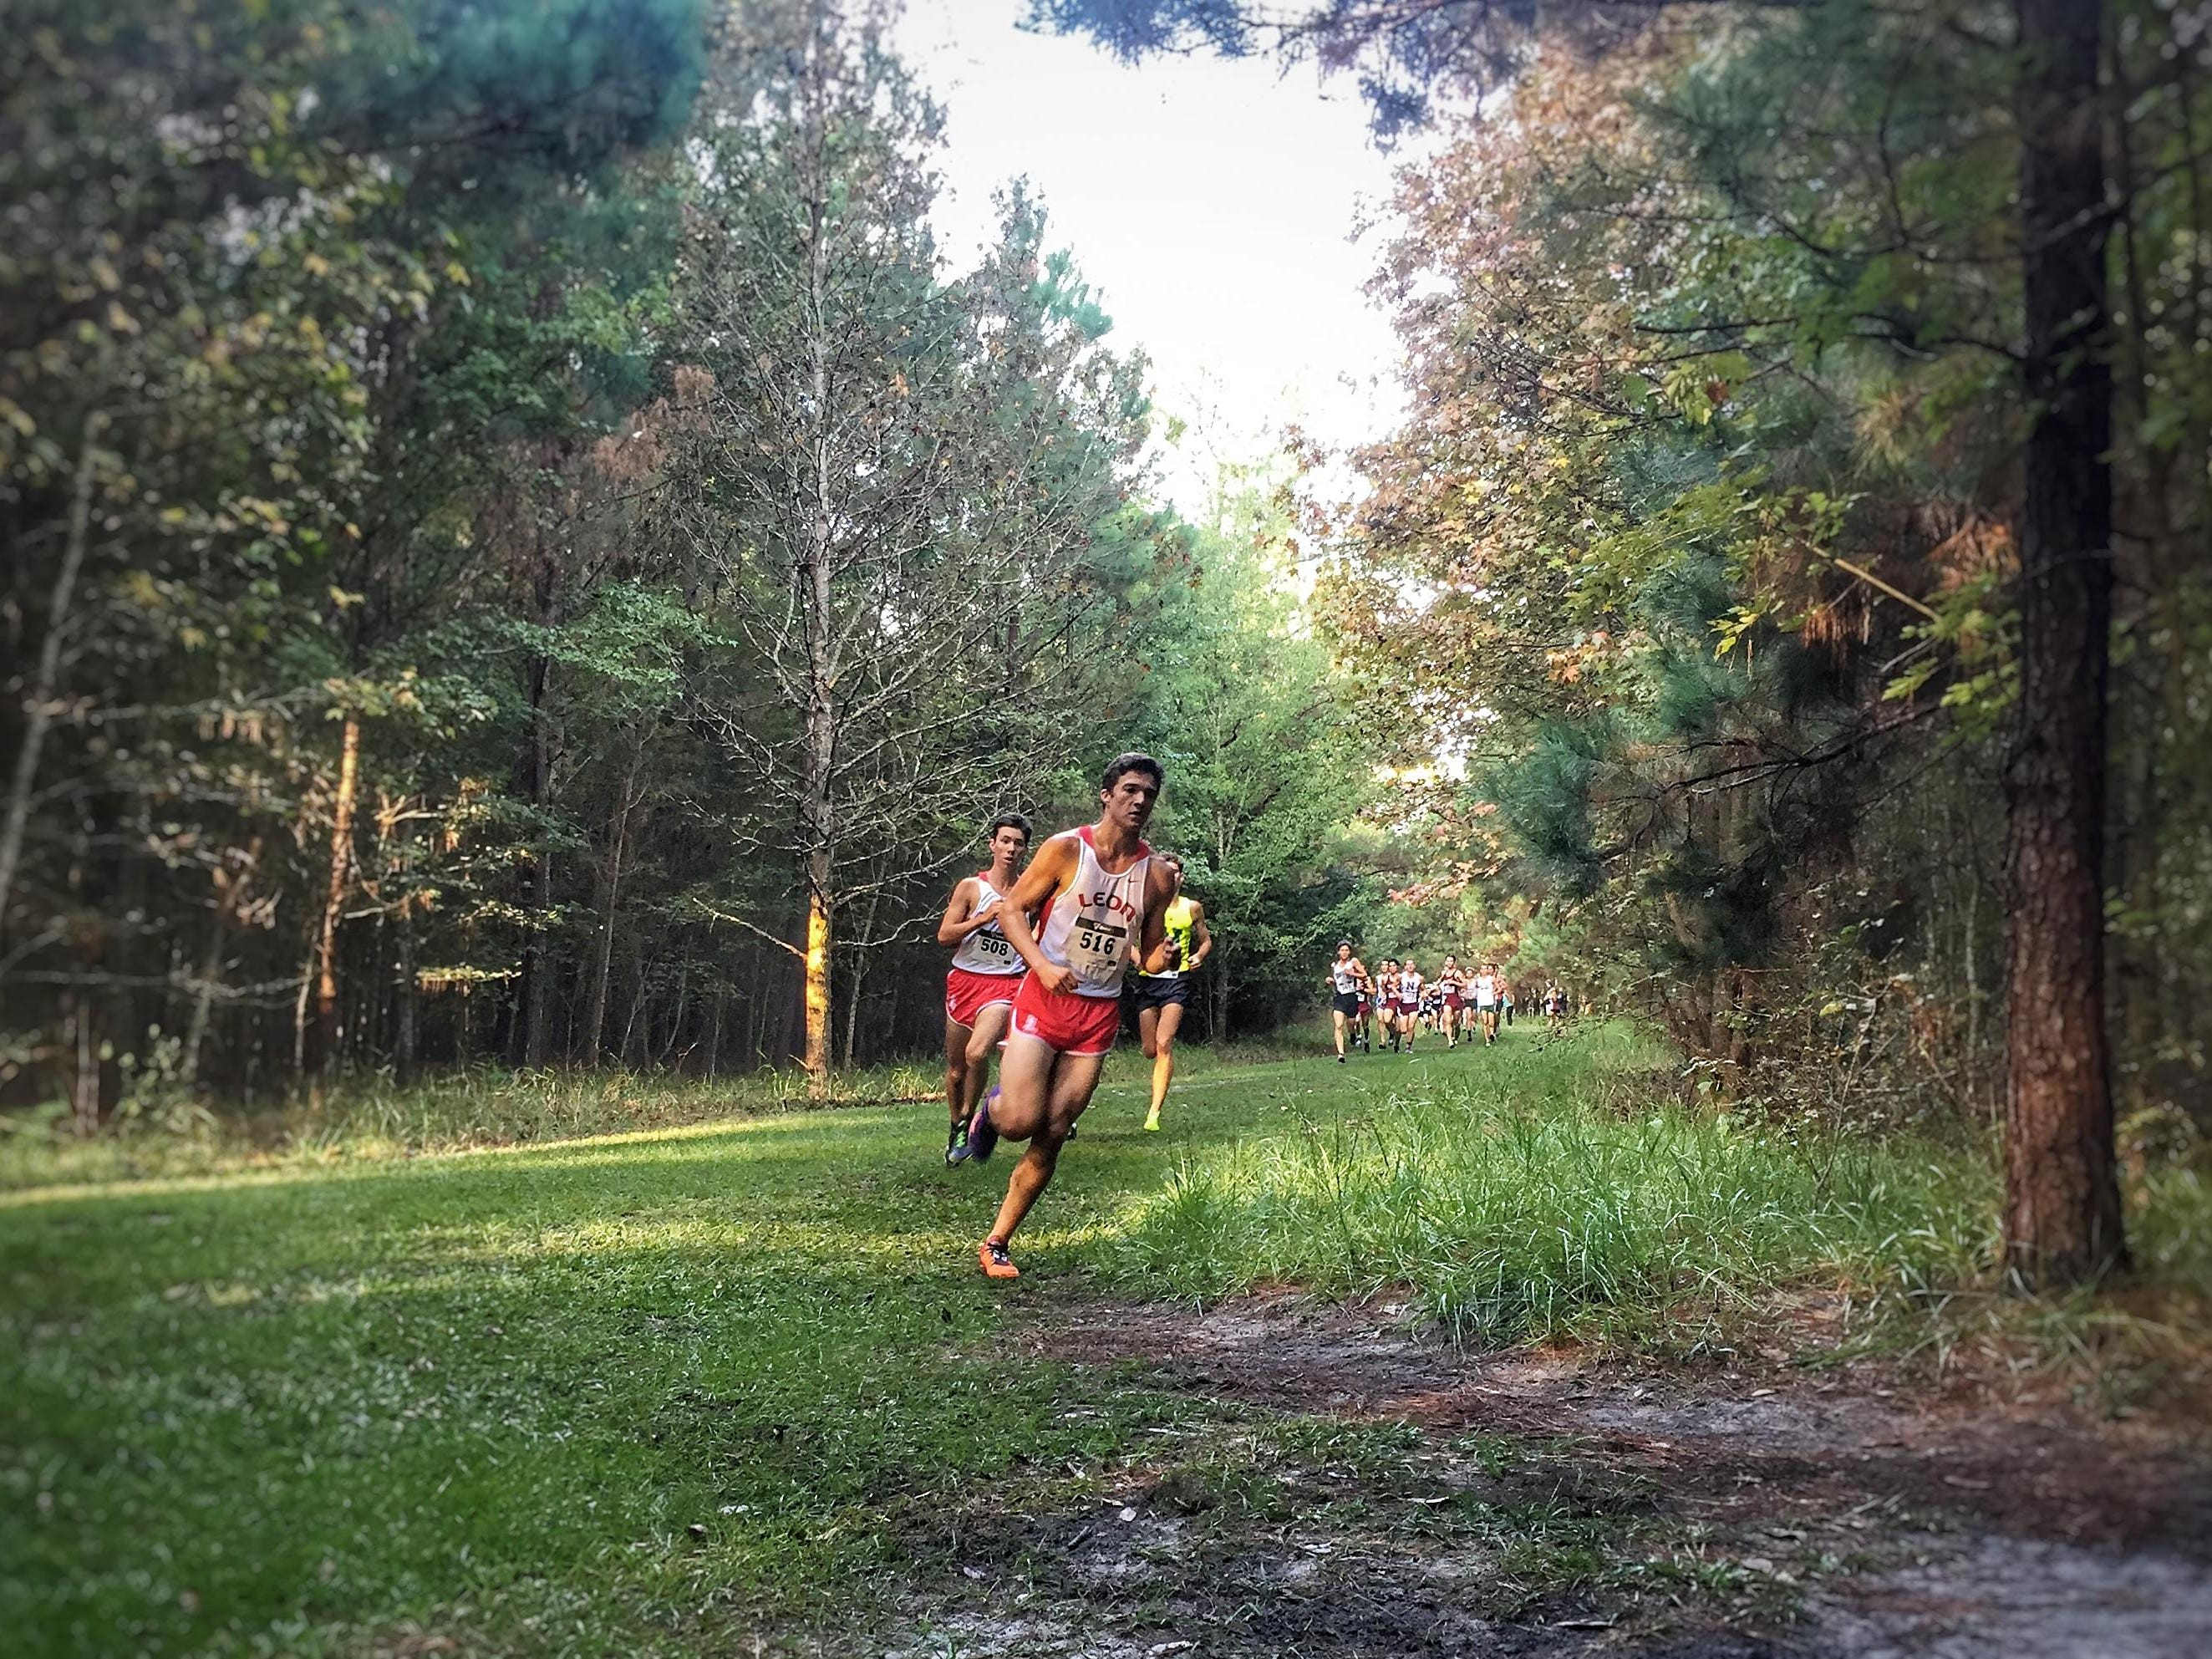 Leon senior Adam Wallenfelsz leads junior teammate Matthew Cashin into a turn on the Region 1-3A course at Alligator Lake in Lake City. Cashin was first and Wallenfelsz was third as the Lions finished fourth to advance to the state meet.